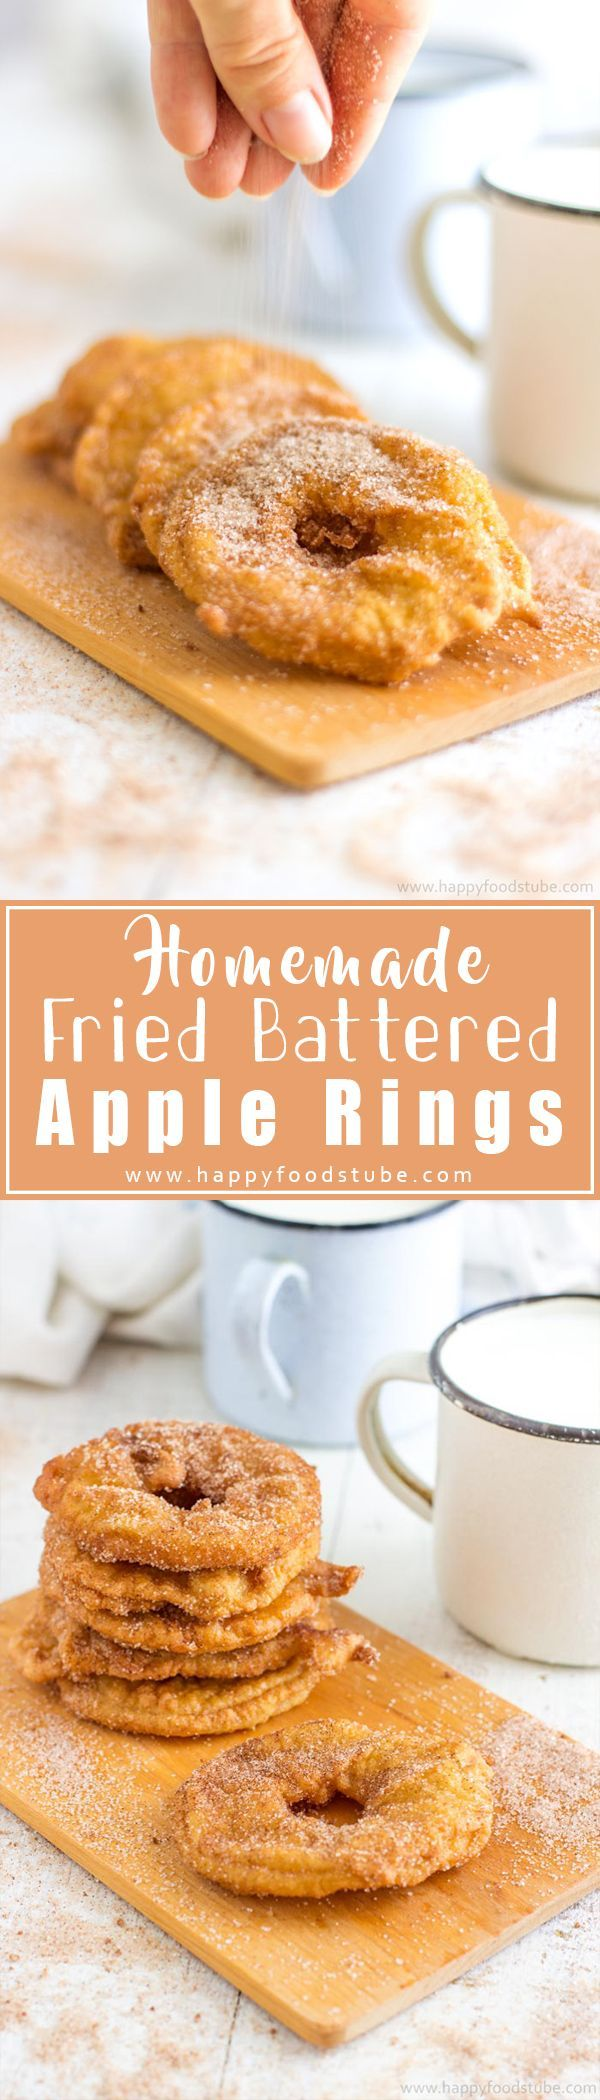 Homemade Fried Battered Apple Rings are simple yet mouth-watering treat! Apple slices dipped in batter, deep-fried & coated in cinnamon sugar! Family favorite dessert recipe, ready in 15 minutes!   happyfoodstube.com